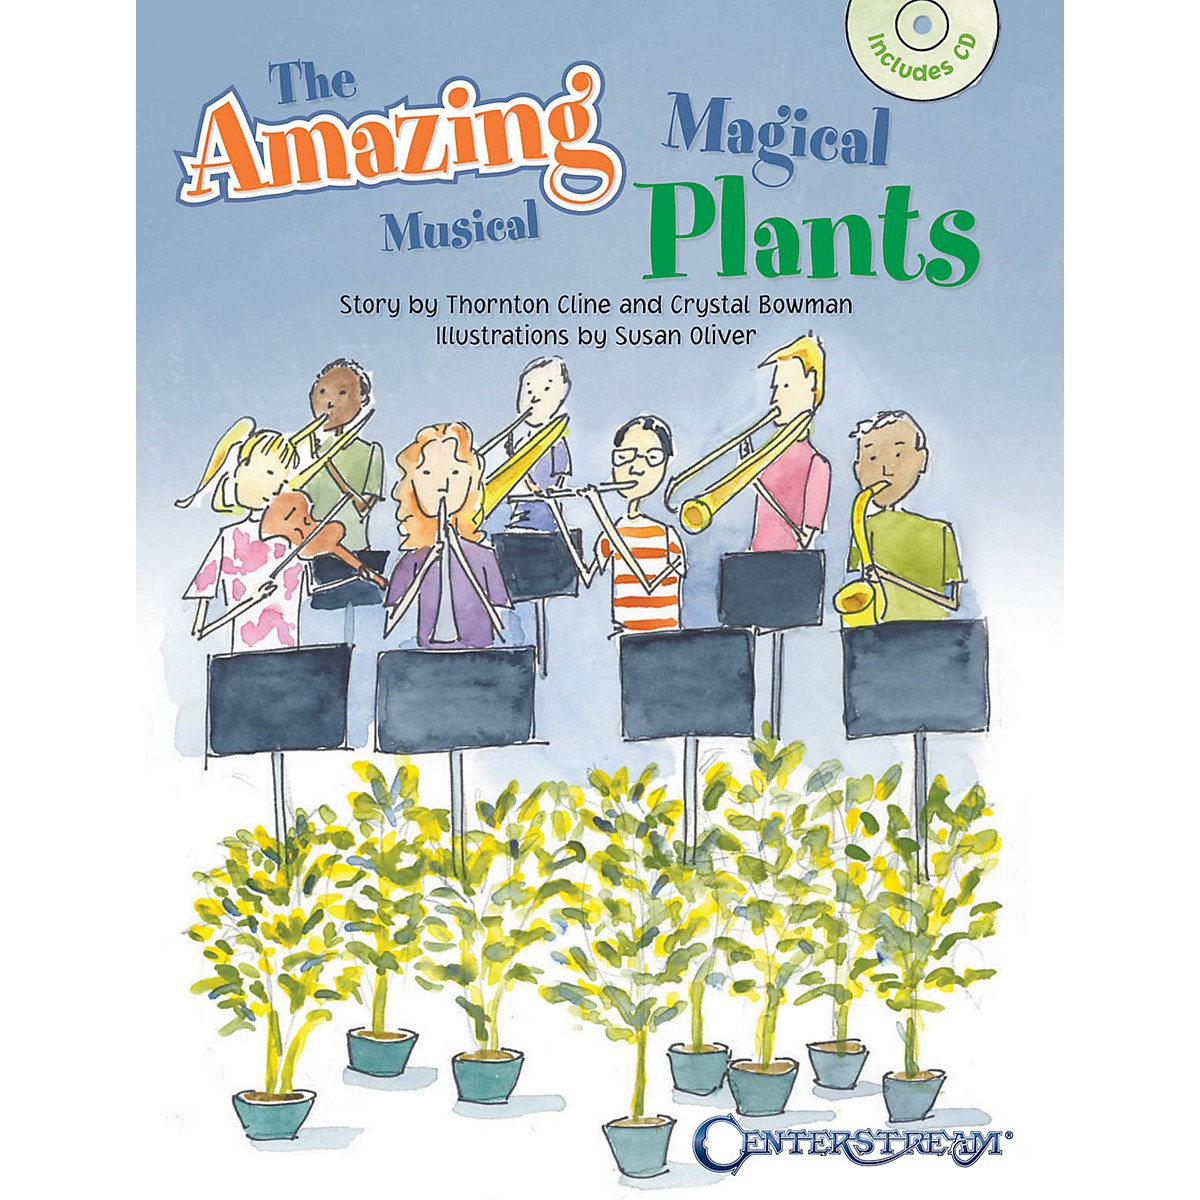 Centerstream Publishing The Amazing Magical Musical Plants Misc Series Softcover with CD